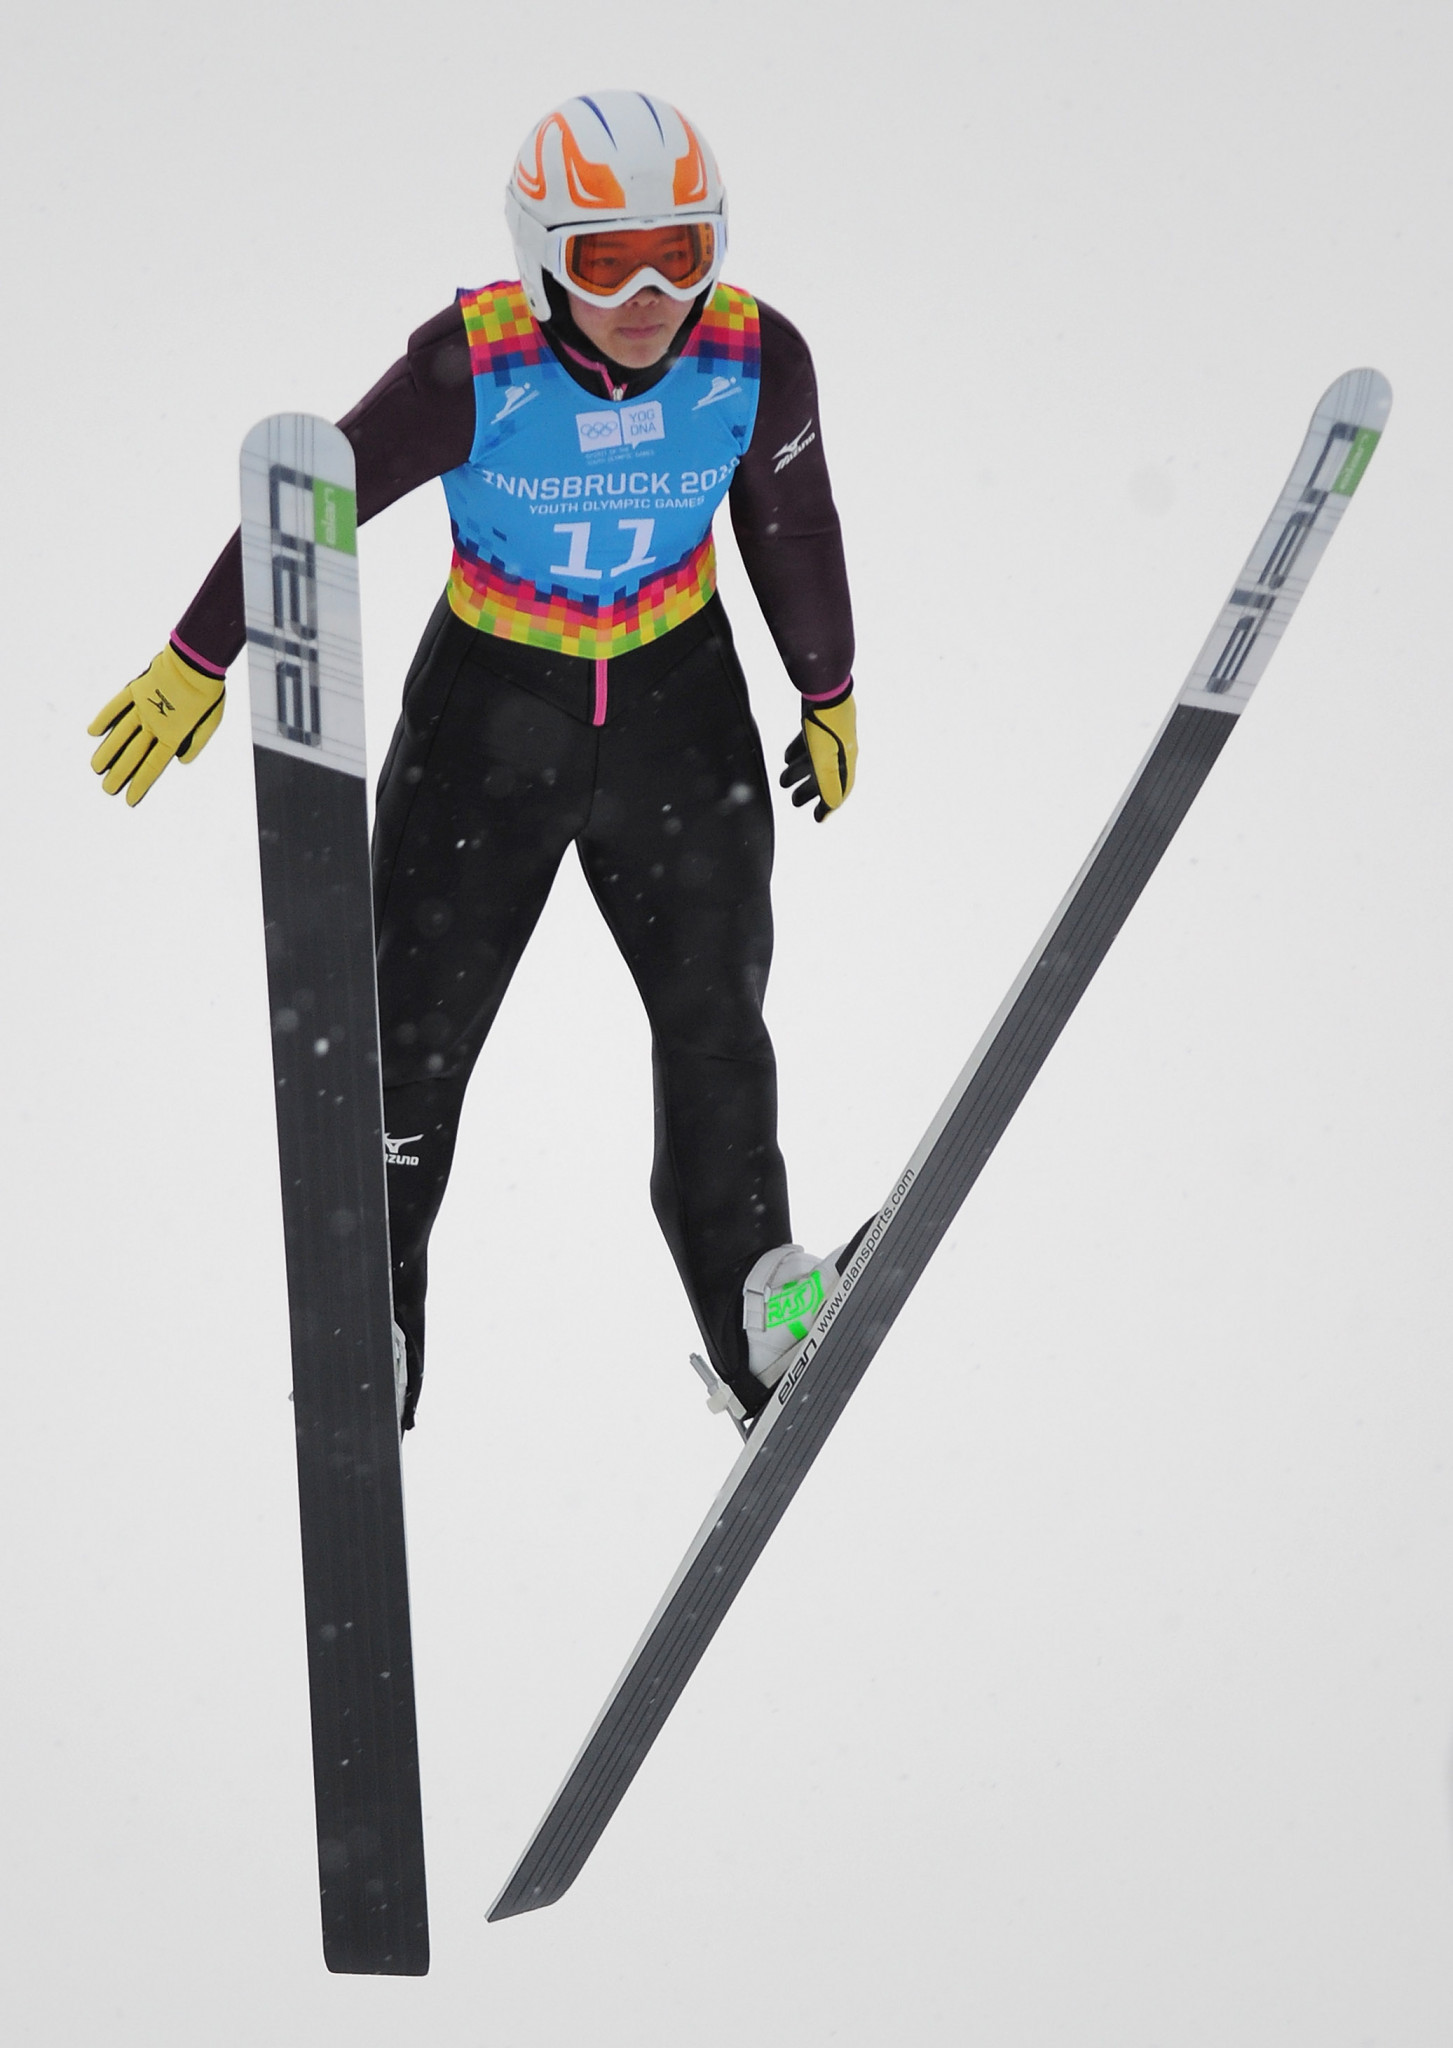 Japan's previous Winter Youth Olympic Games gold medallists have included Sara Takanashi, winner of the girls' ski jump at Innsbruck 2012 and now one of the top senior competitors ©Getty Images